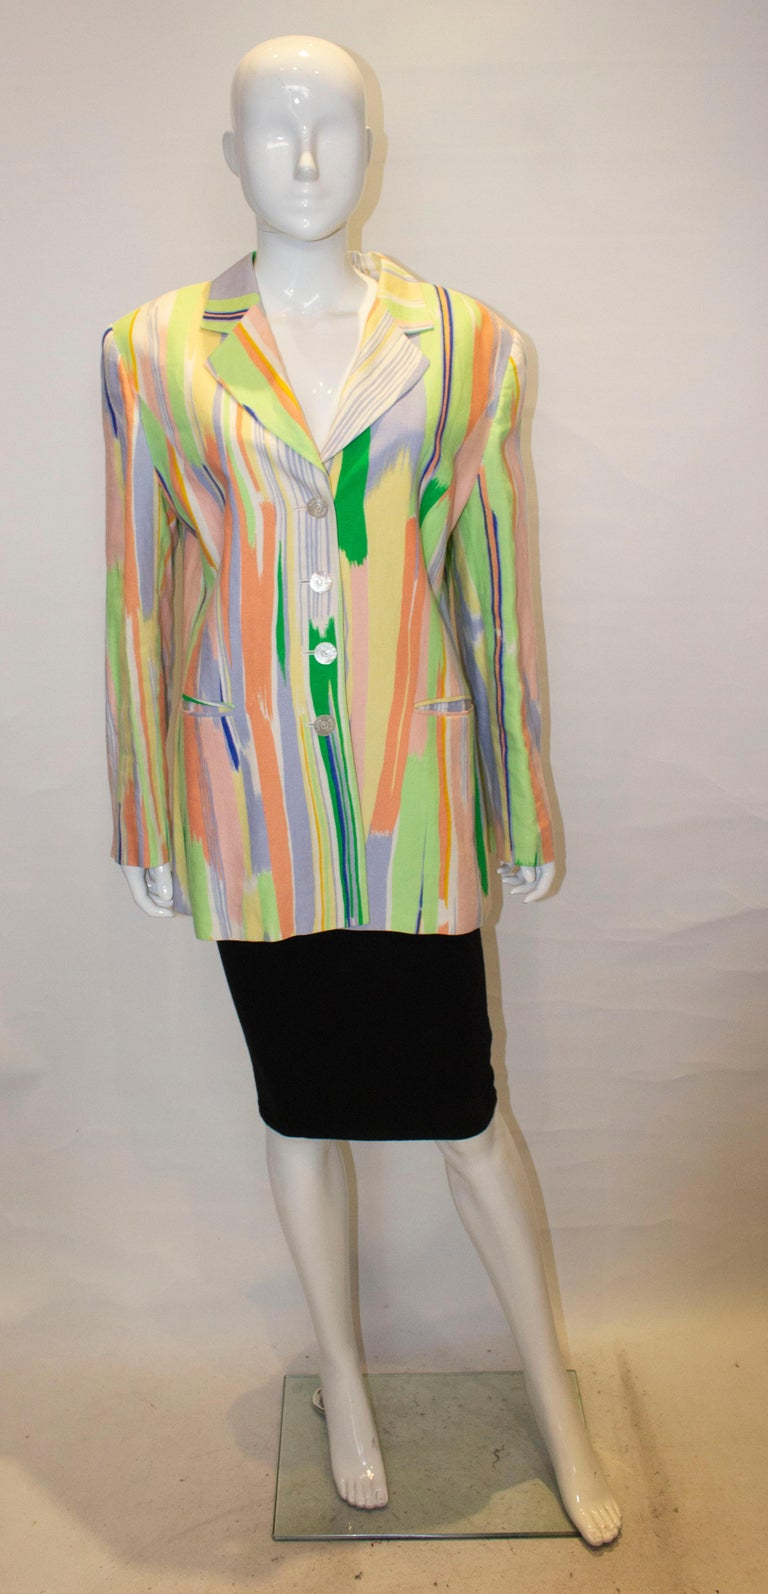 A fun jacket for Spring by Louis Feraud. The jacket is in linen, fully lined and has two pockets.